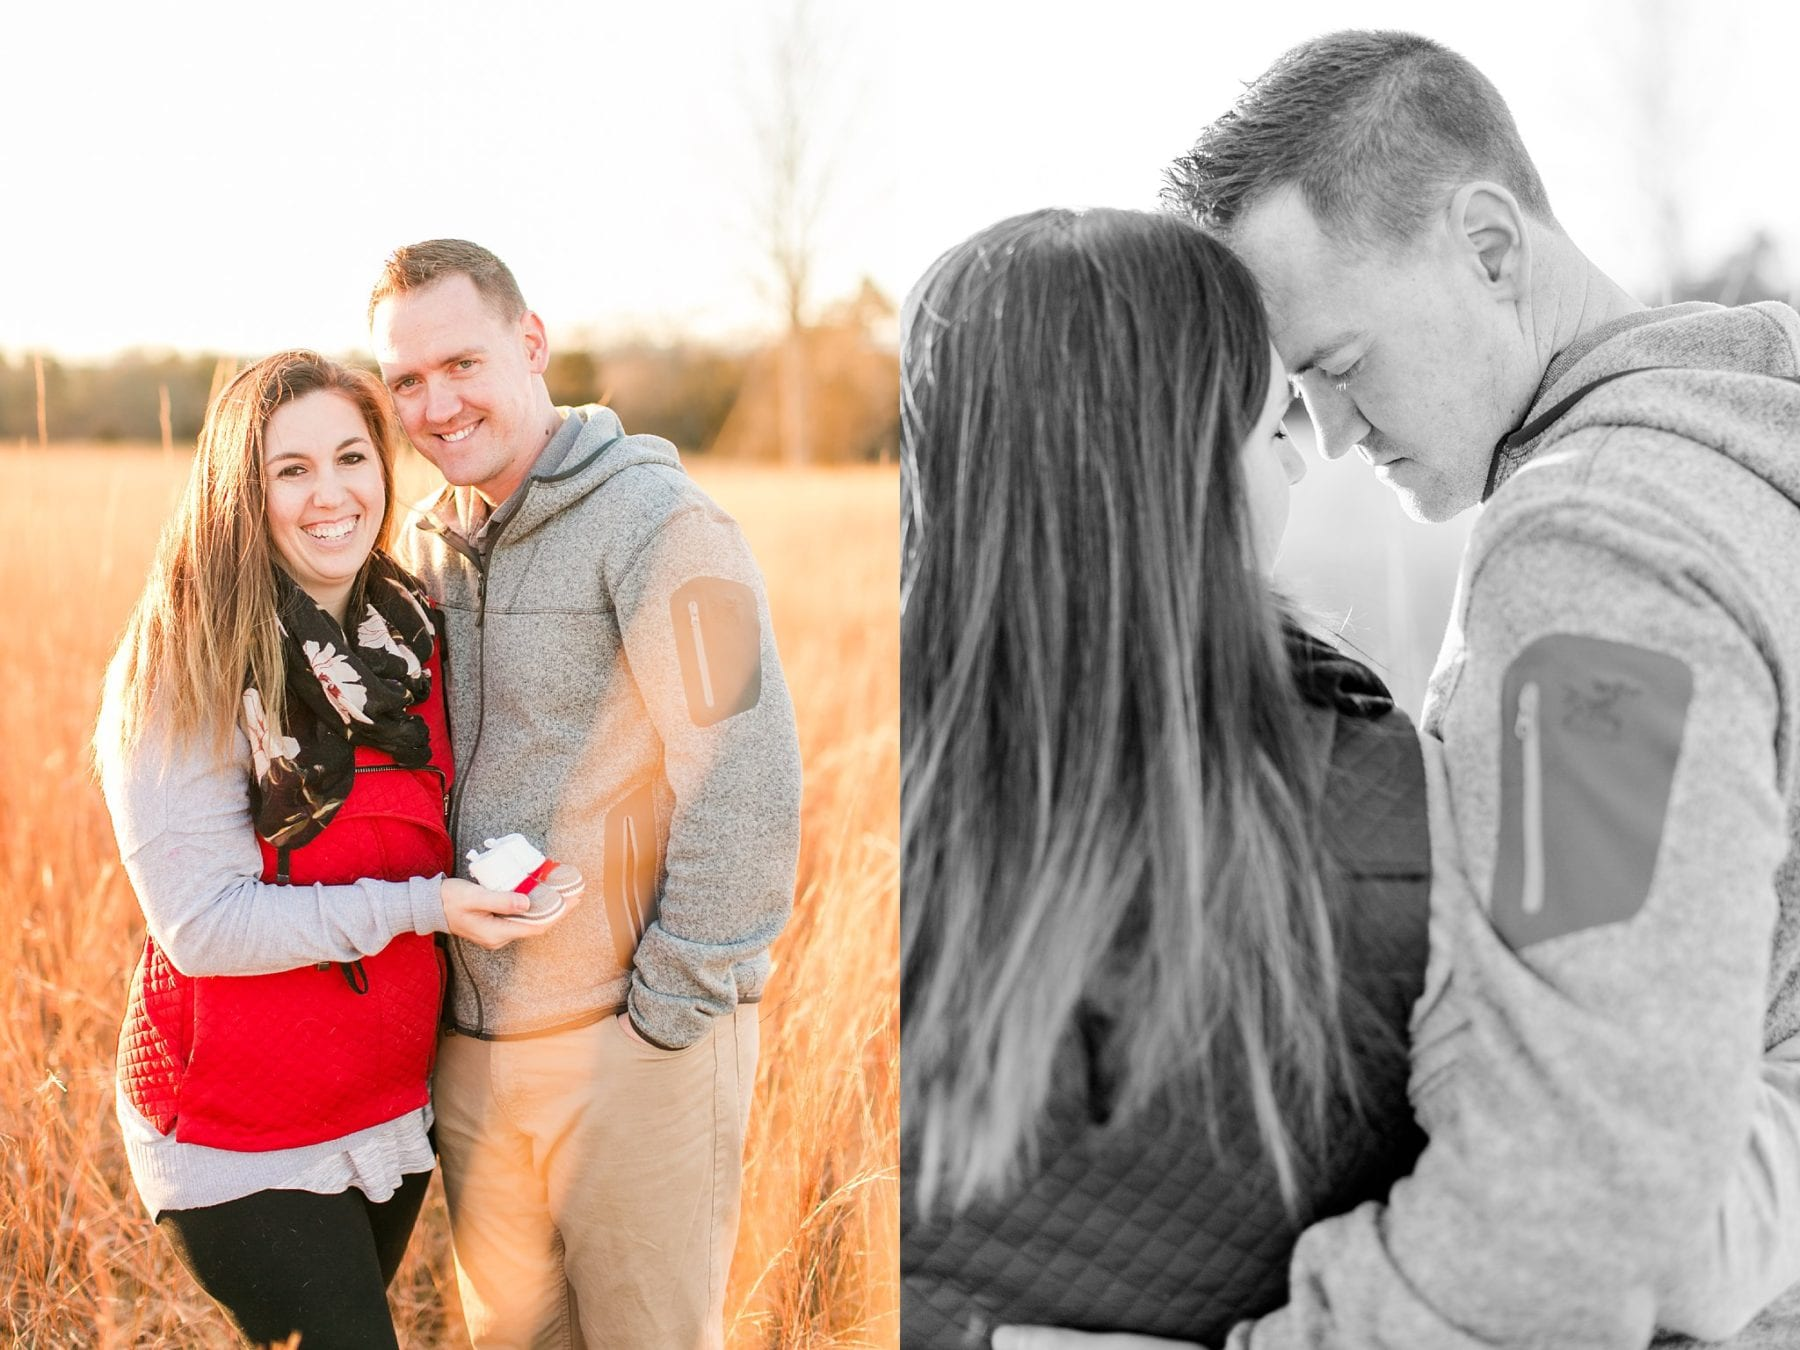 Firefighter Baby Announcement Virginia Photographer Megan Kelsey Photography Jeromy & Becky-138.jpg